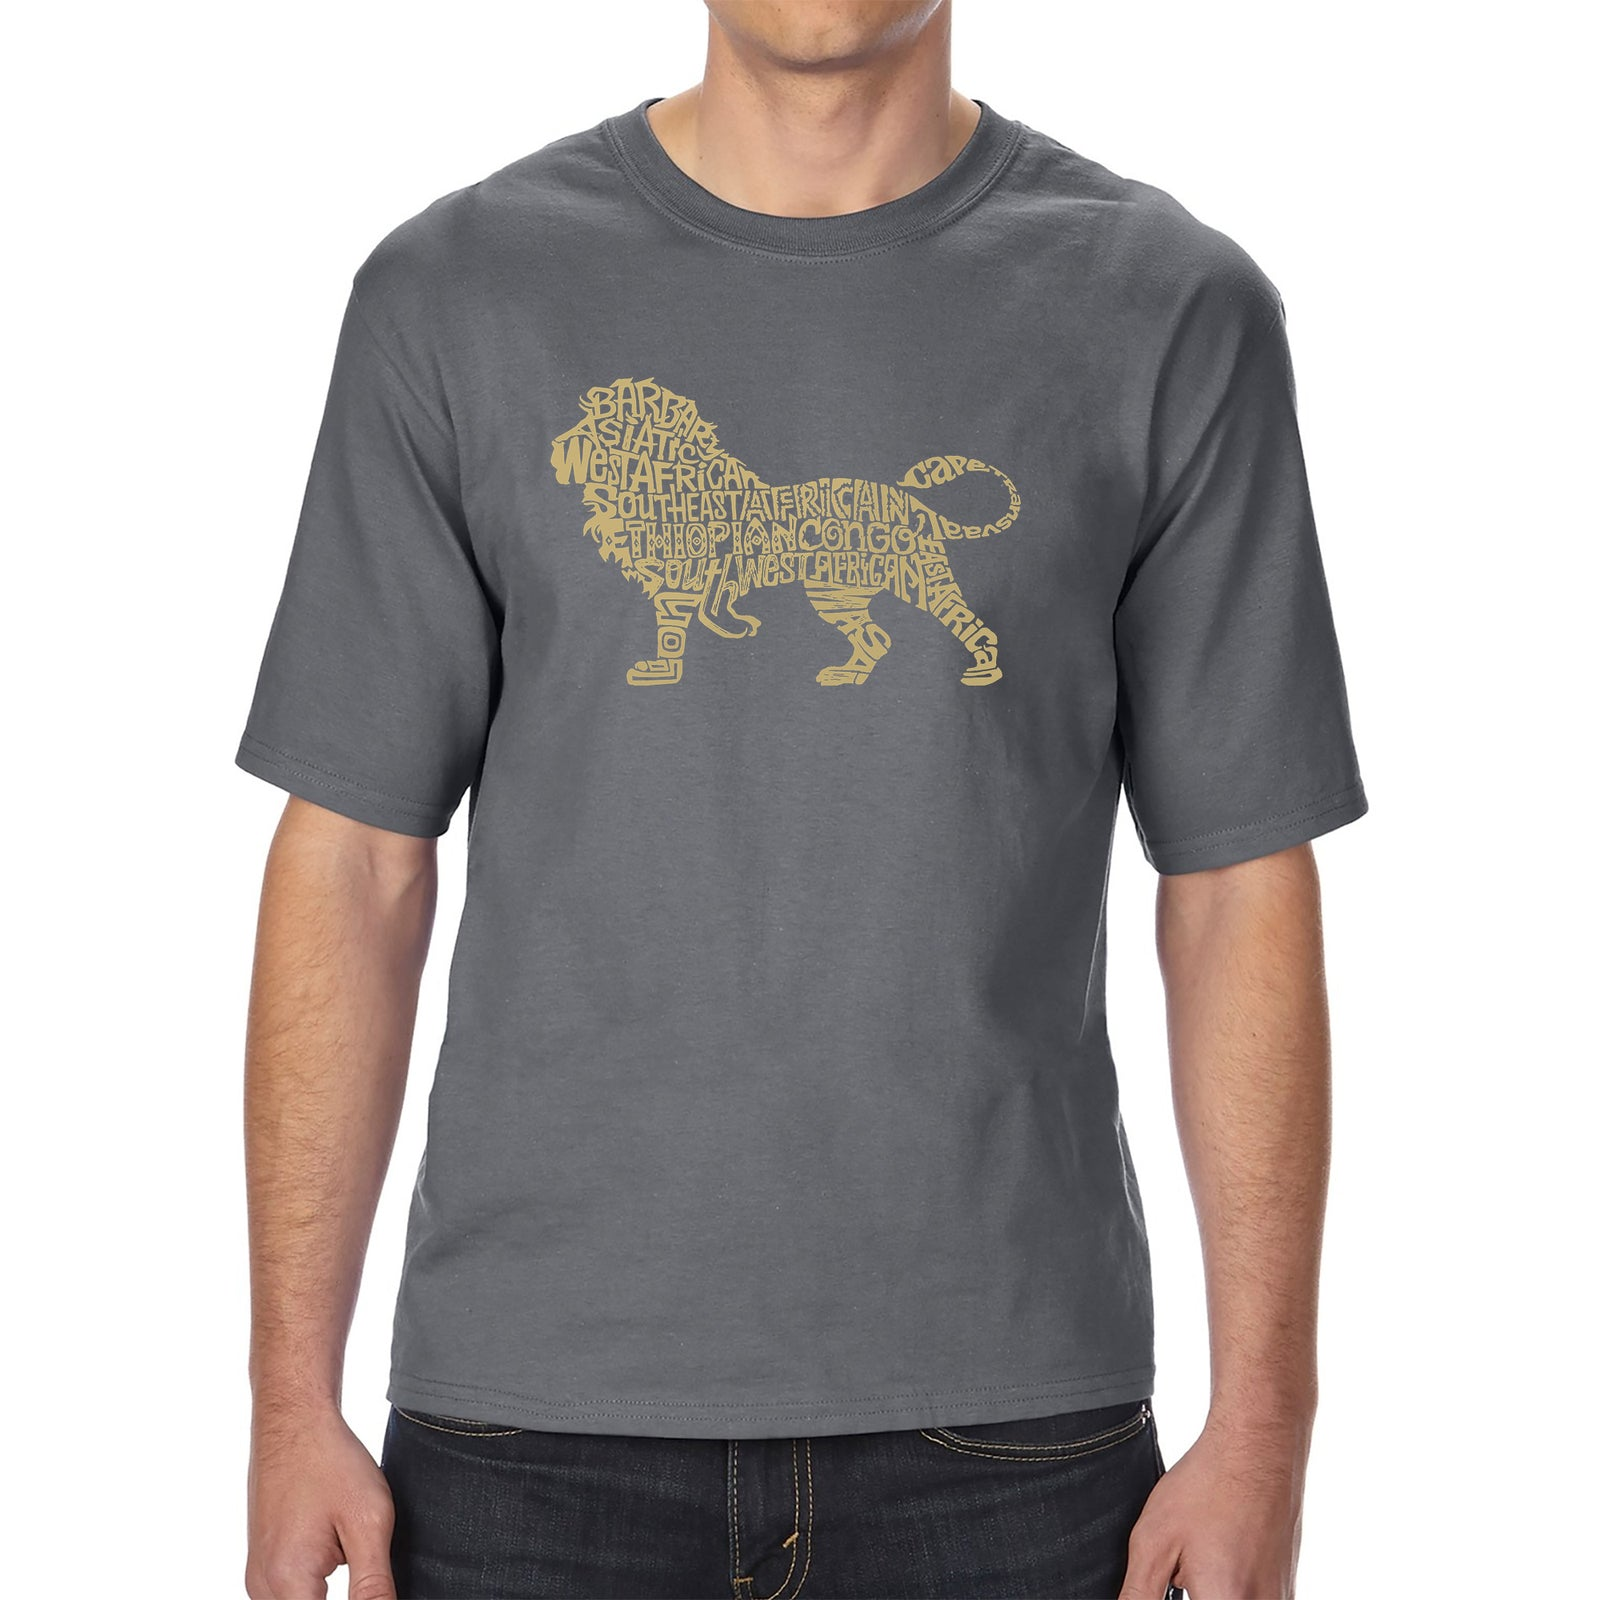 Men's Tall and Long Word Art T-shirt - Lion